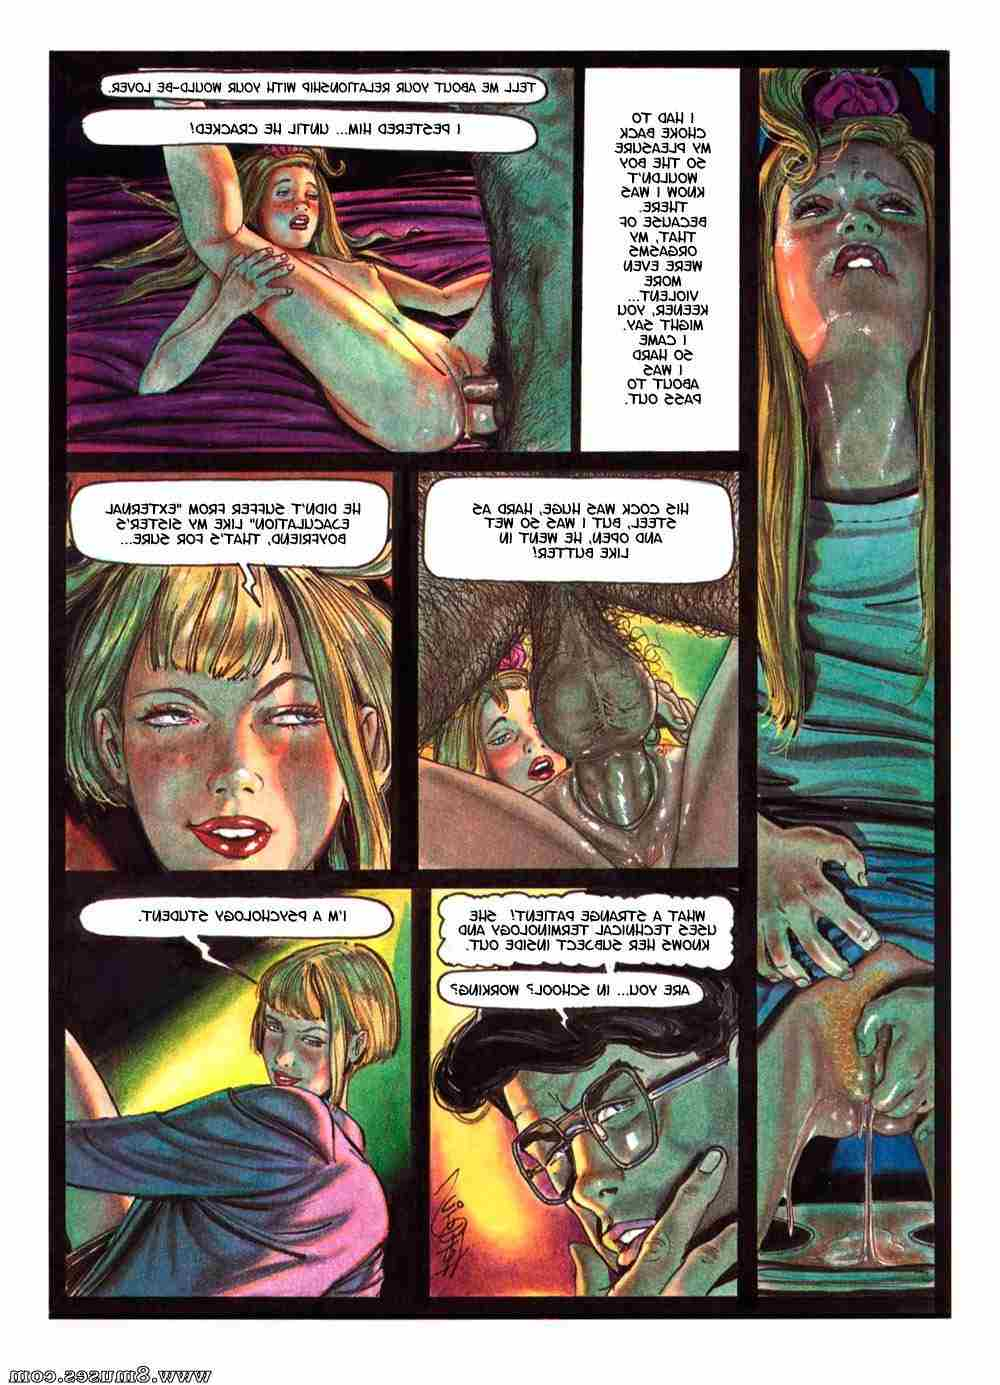 Ferocius-Comics/Forbidden-Flower Forbidden_Flower__8muses_-_Sex_and_Porn_Comics_54.jpg